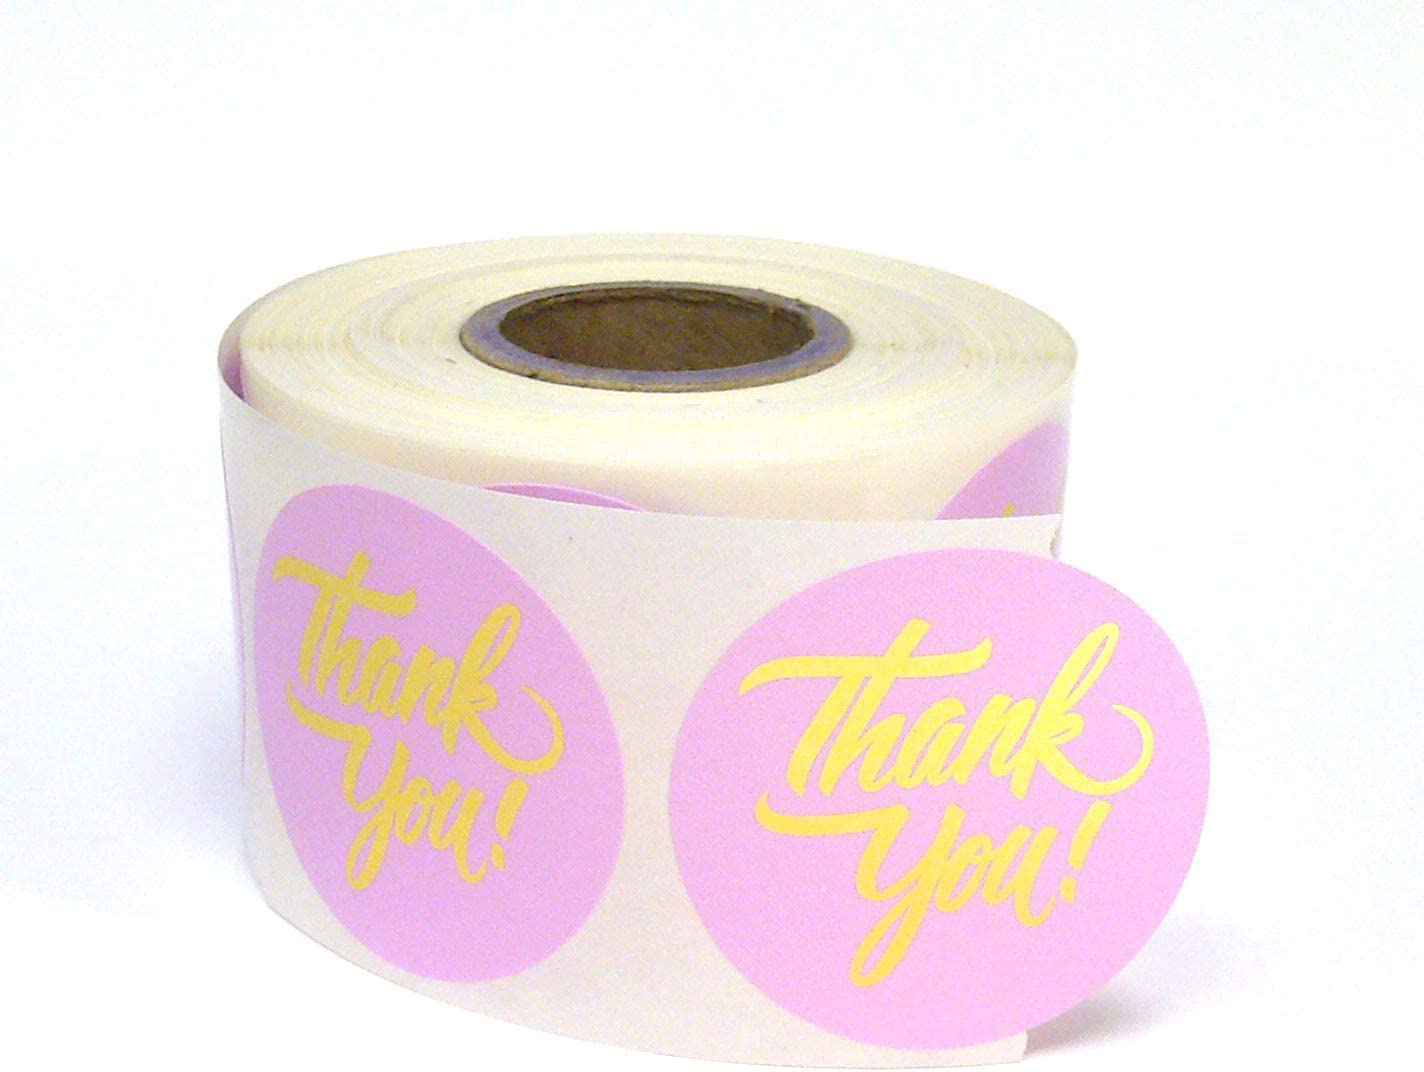 Next Day Labels 500 Thank You Stickers / for Company Promotional Items, Party Favors, Envelopes, or Business Merch / Round, 1.5 inches, Pink and Gold Foil Lettering